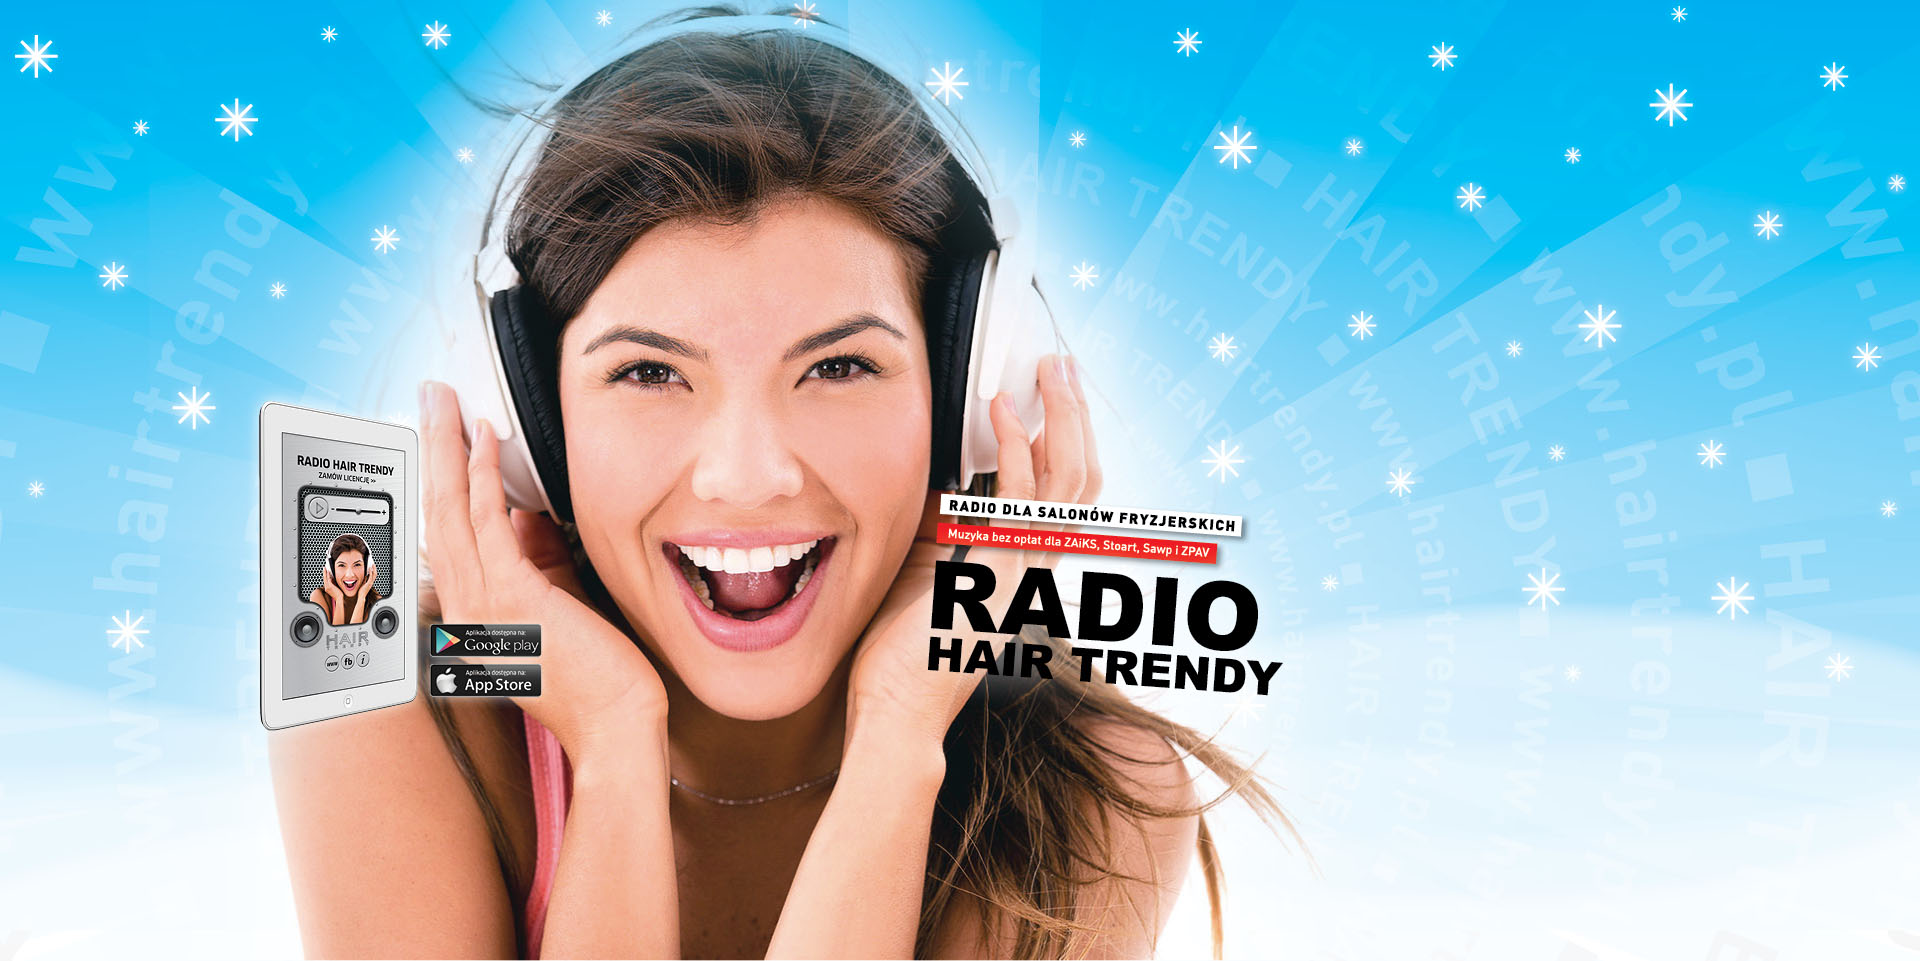 Radio internetowe 2